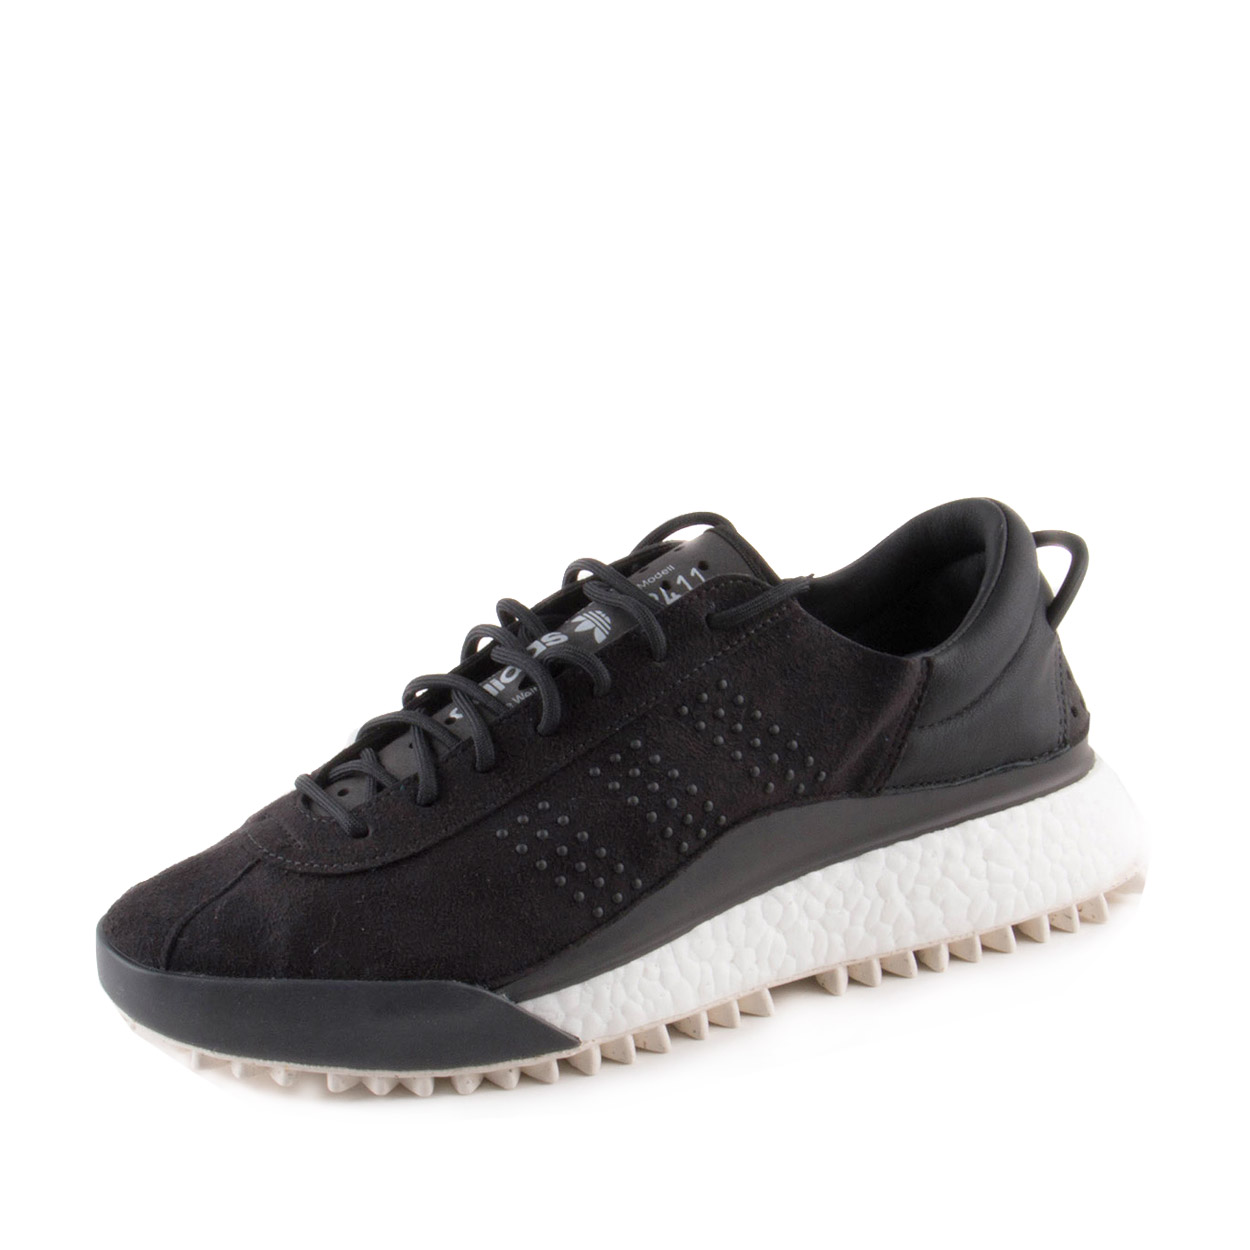 Adidas Mens Alexander Wang AW Hike Lo Black White AC6839 by Adidas